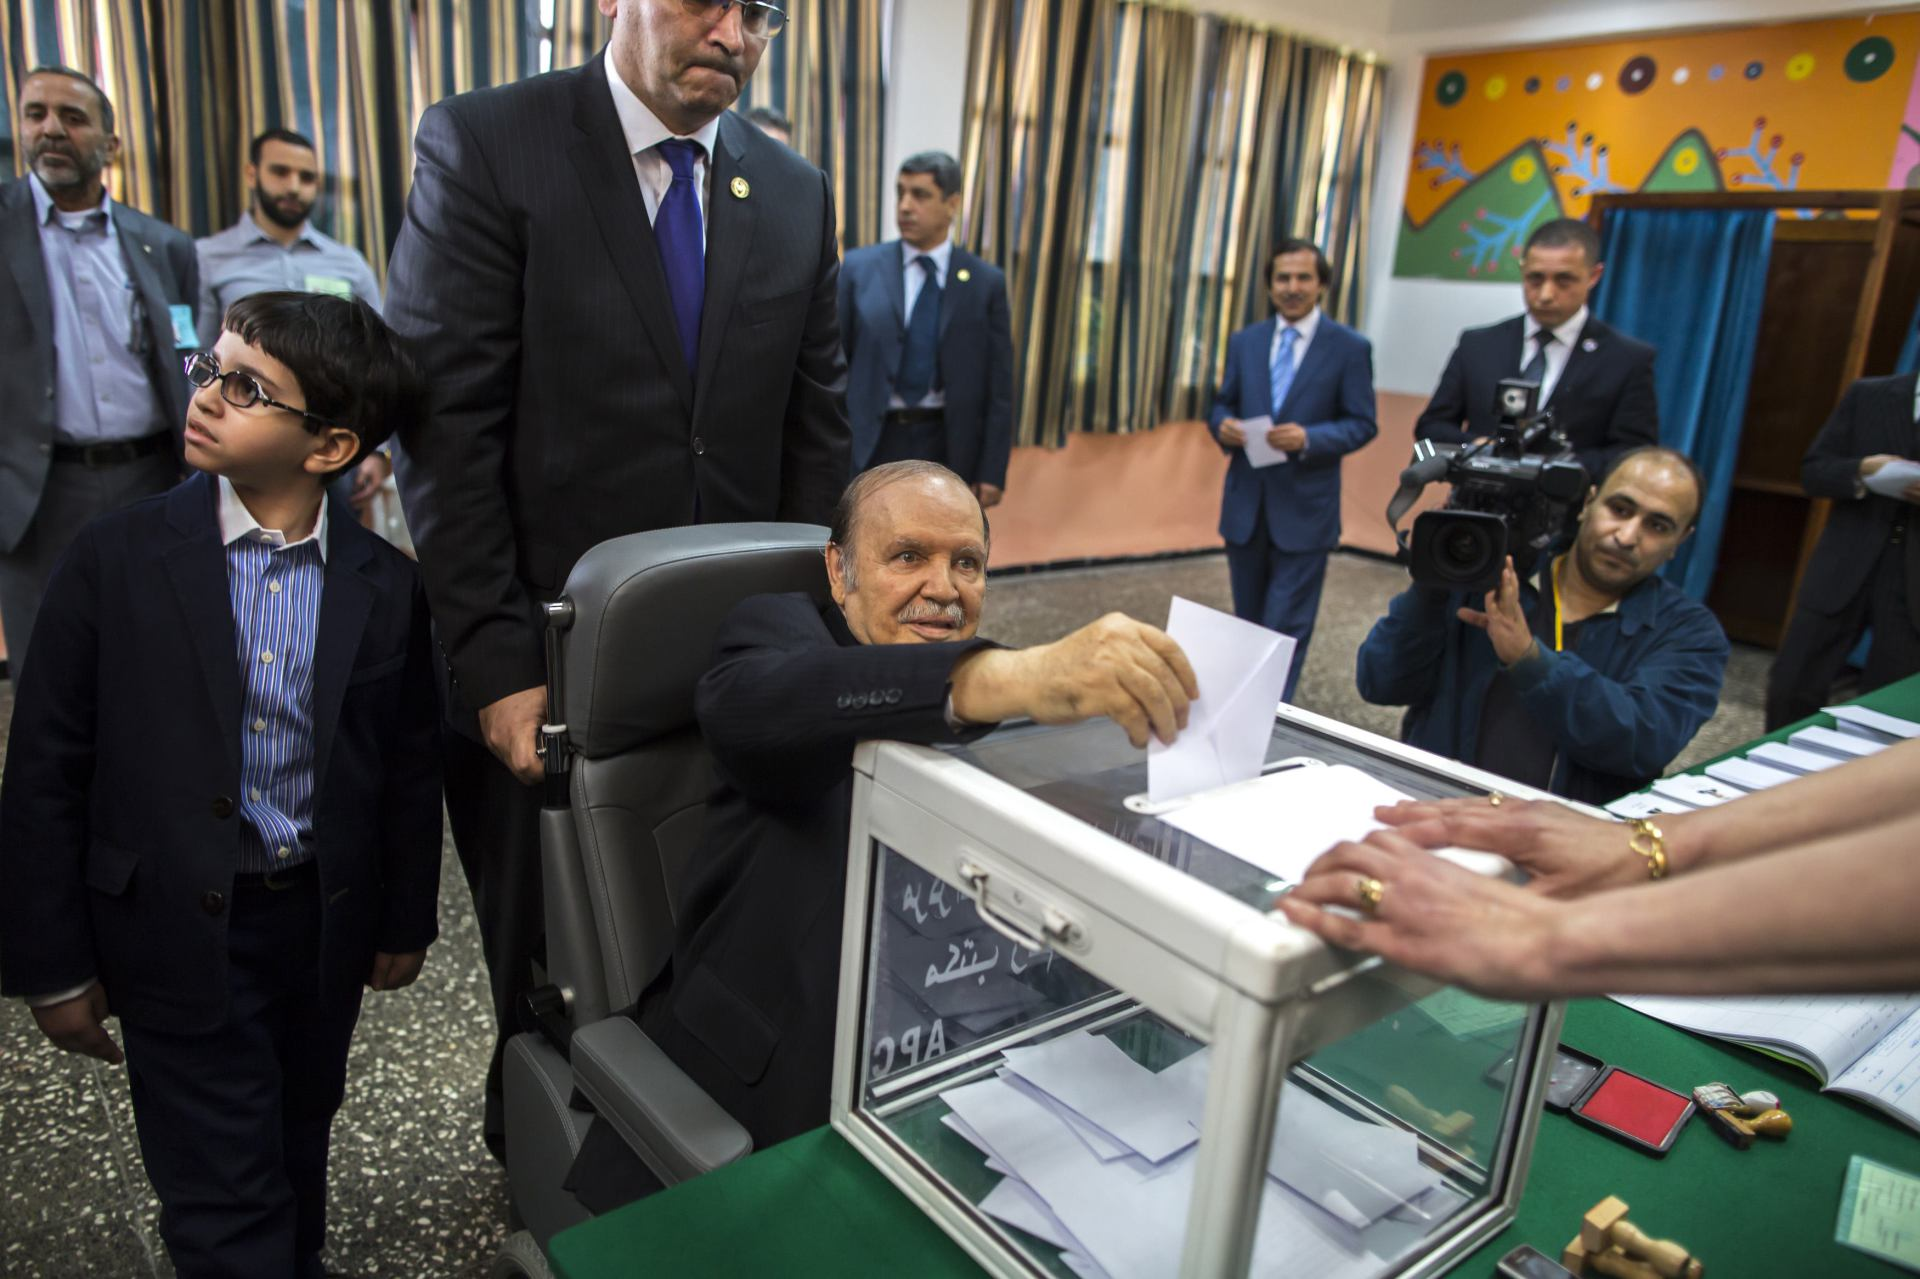 Elderly Bouteflika Re-Elected in Algeria, as Search Continues for Capable Successor